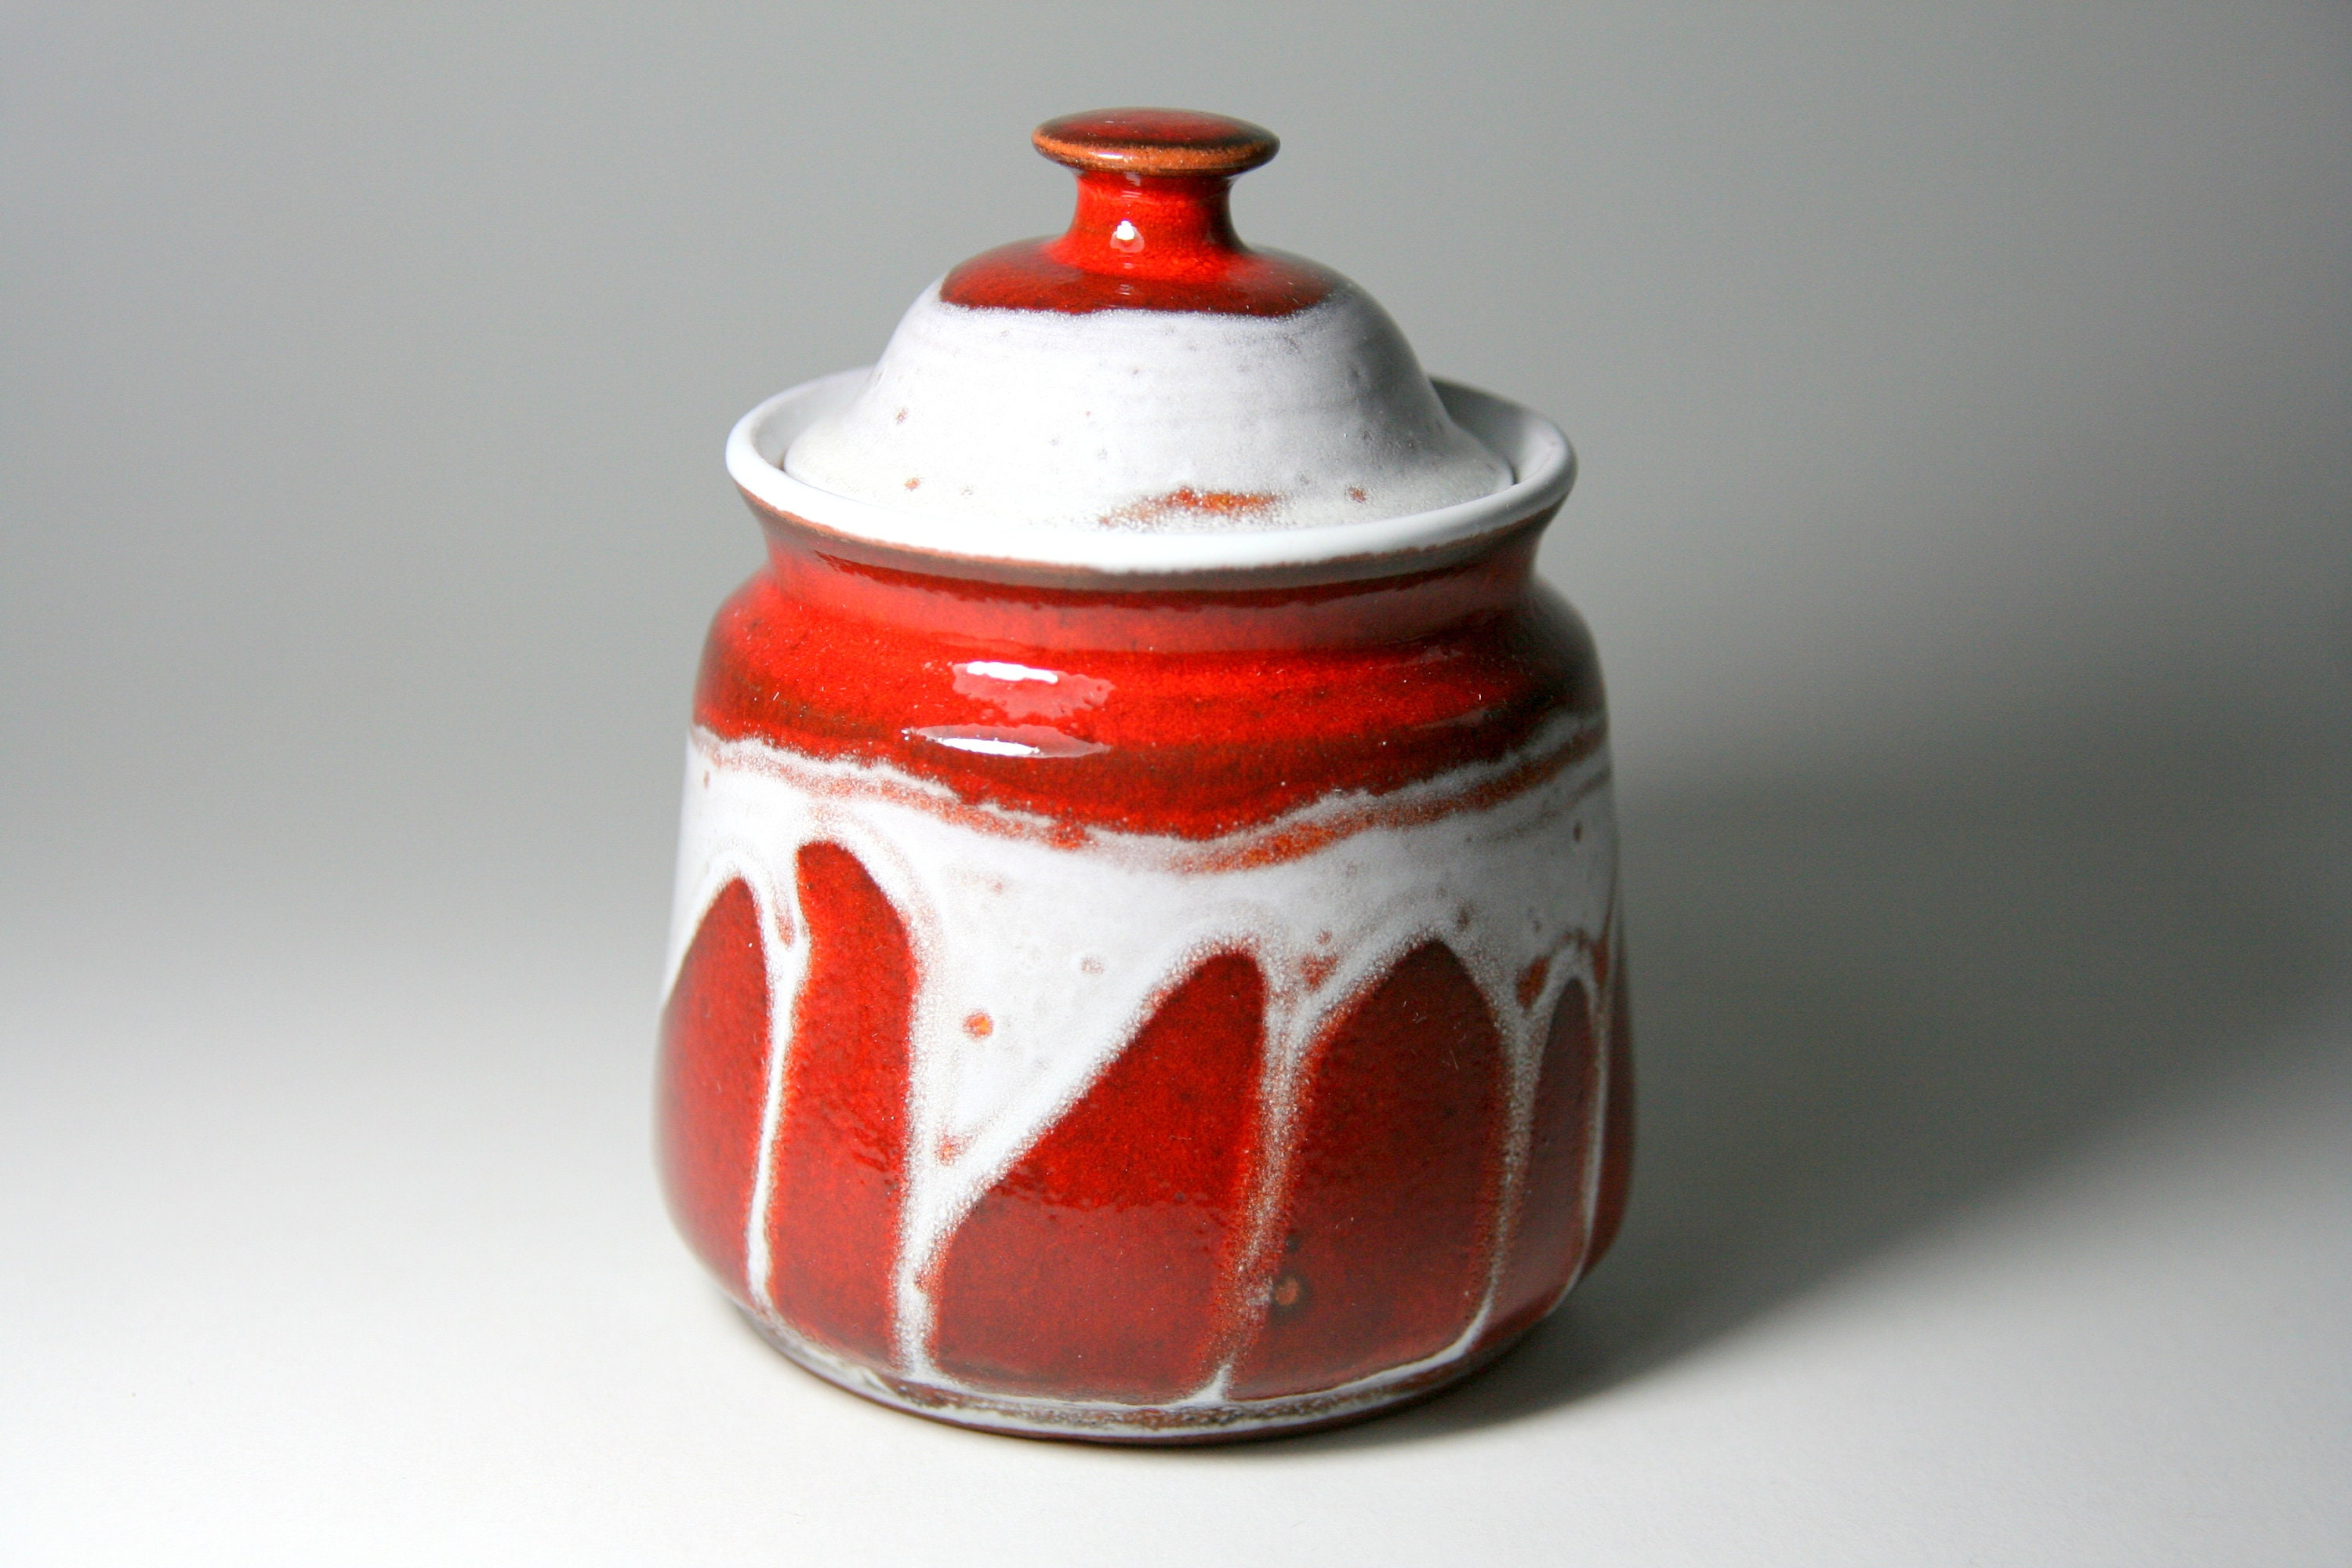 Handmade Ceramic Dish Pottery Gift Kitchen Canister Sugar Bowl with Lid